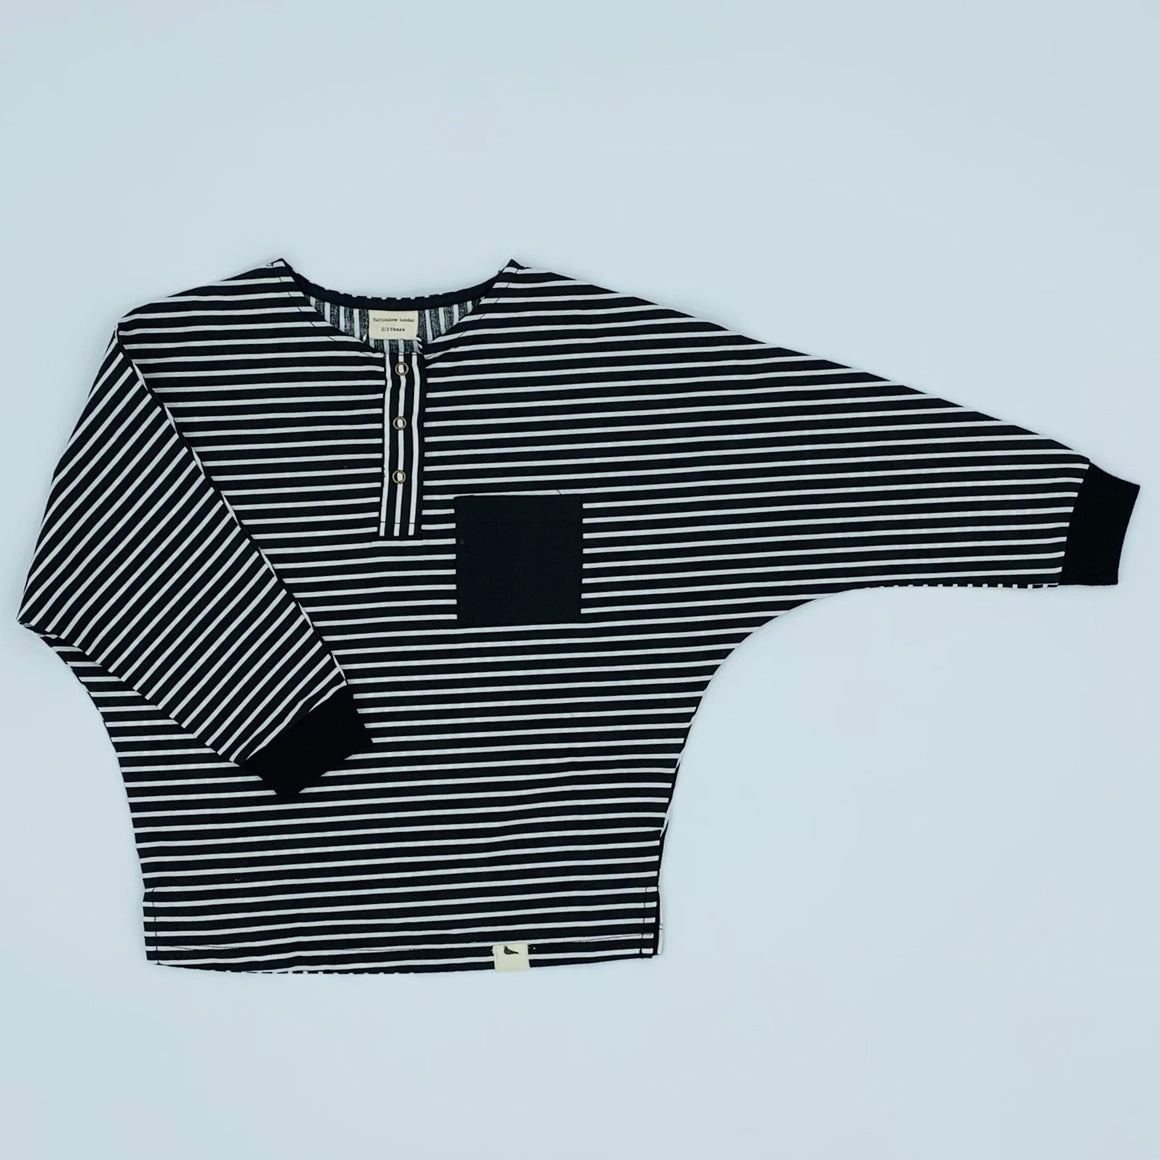 New Turtledove London black striped shirt size 2-3 years